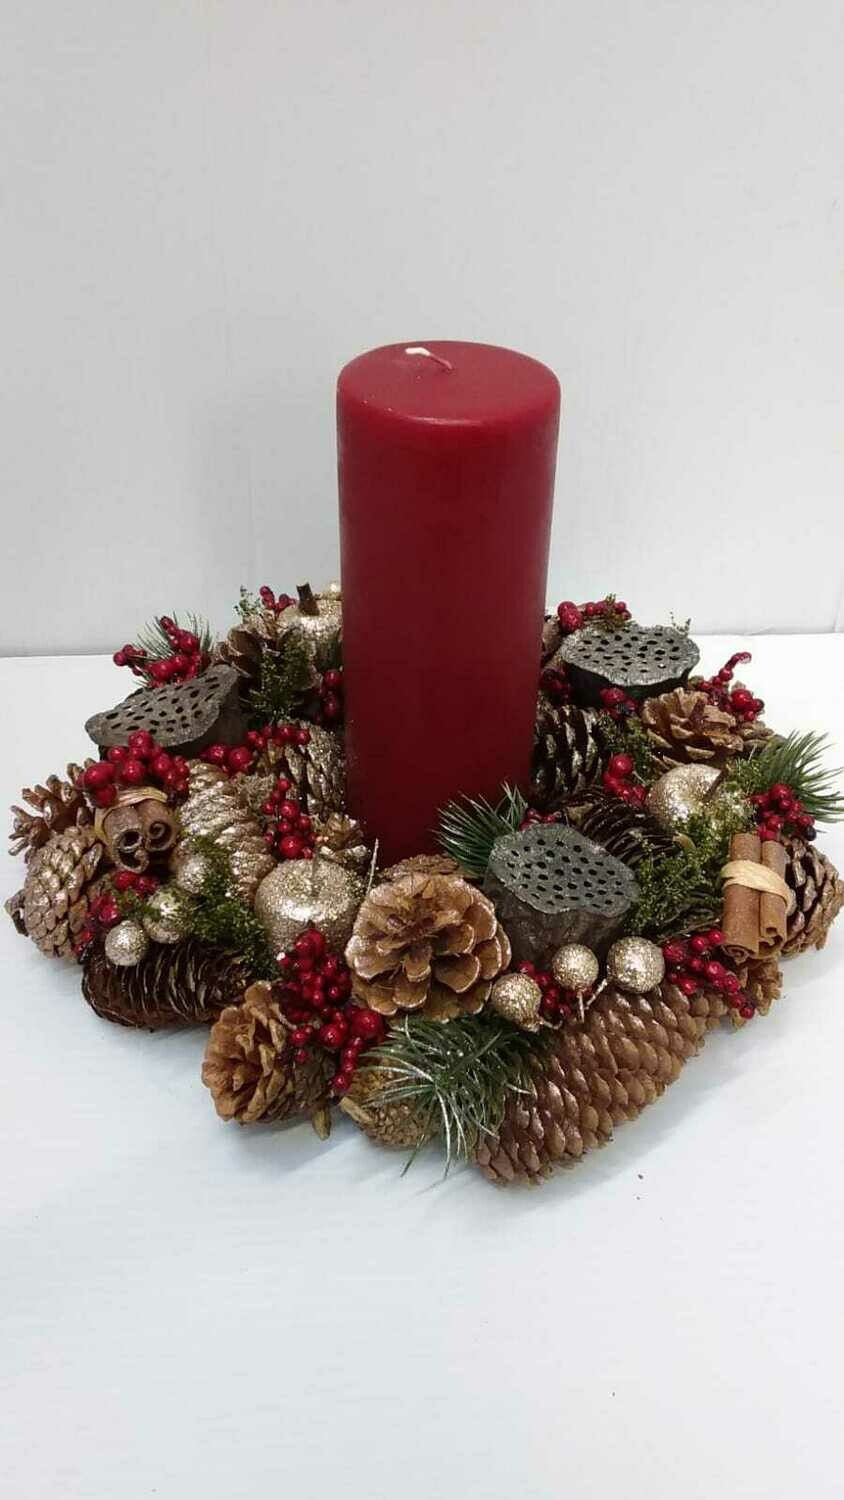 Everlasting table centerpiece including red or white candle 32cm